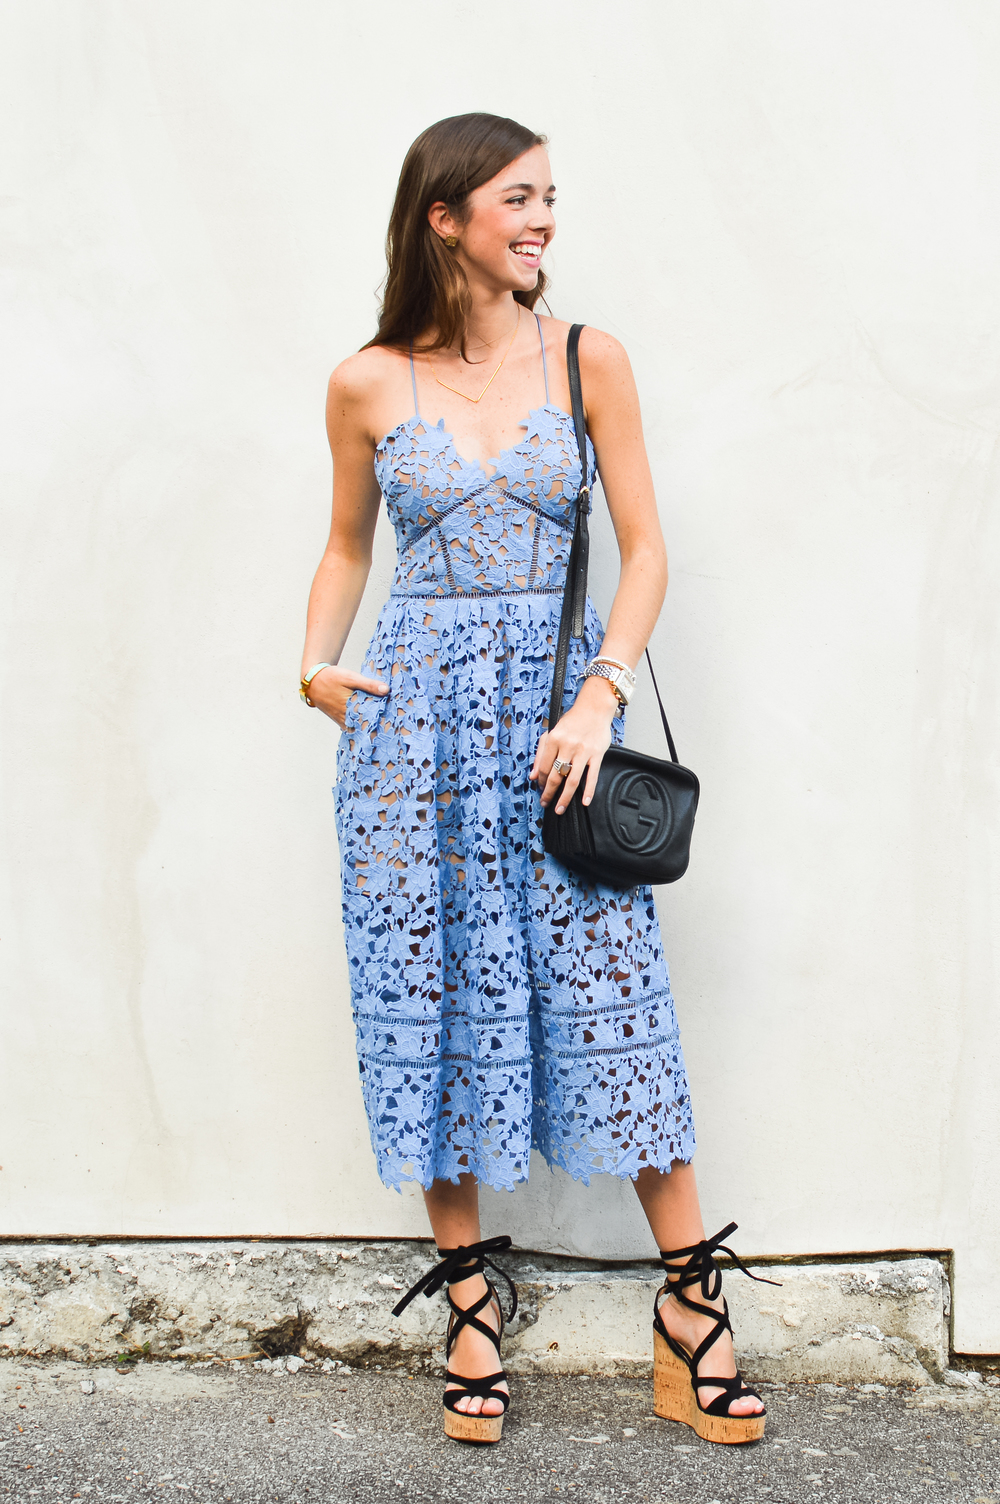 lcb_style_fashion_blogger_selfportrait_dress (2 of 48).jpg